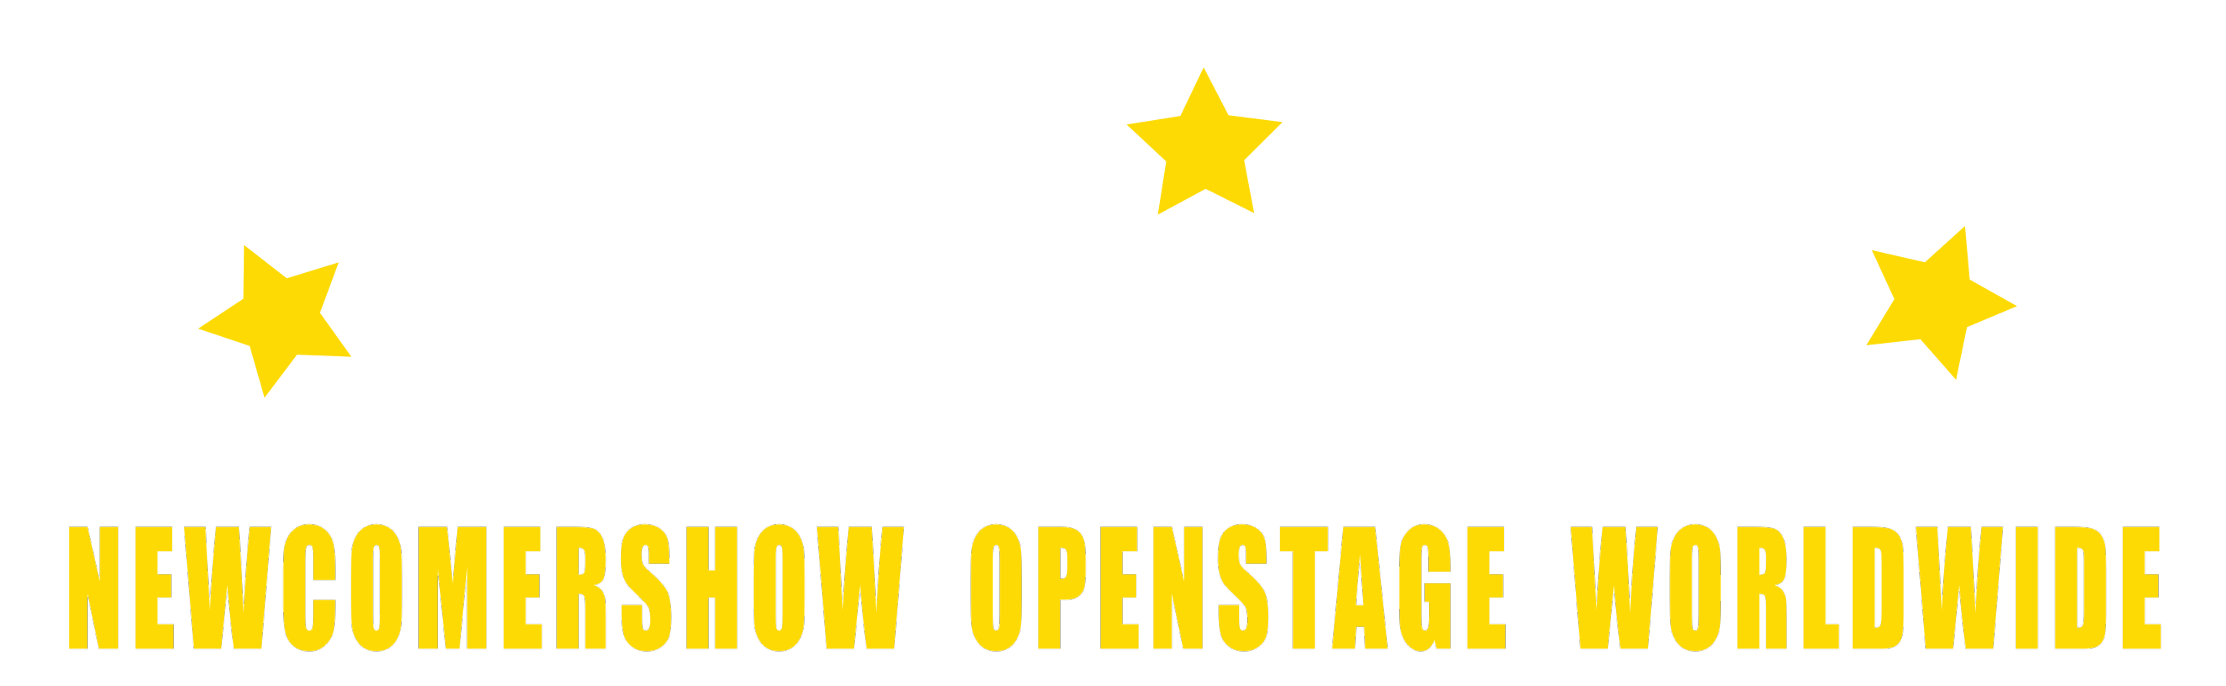 COMEDY N.O.W - Newcomershow Openstage Worldwide